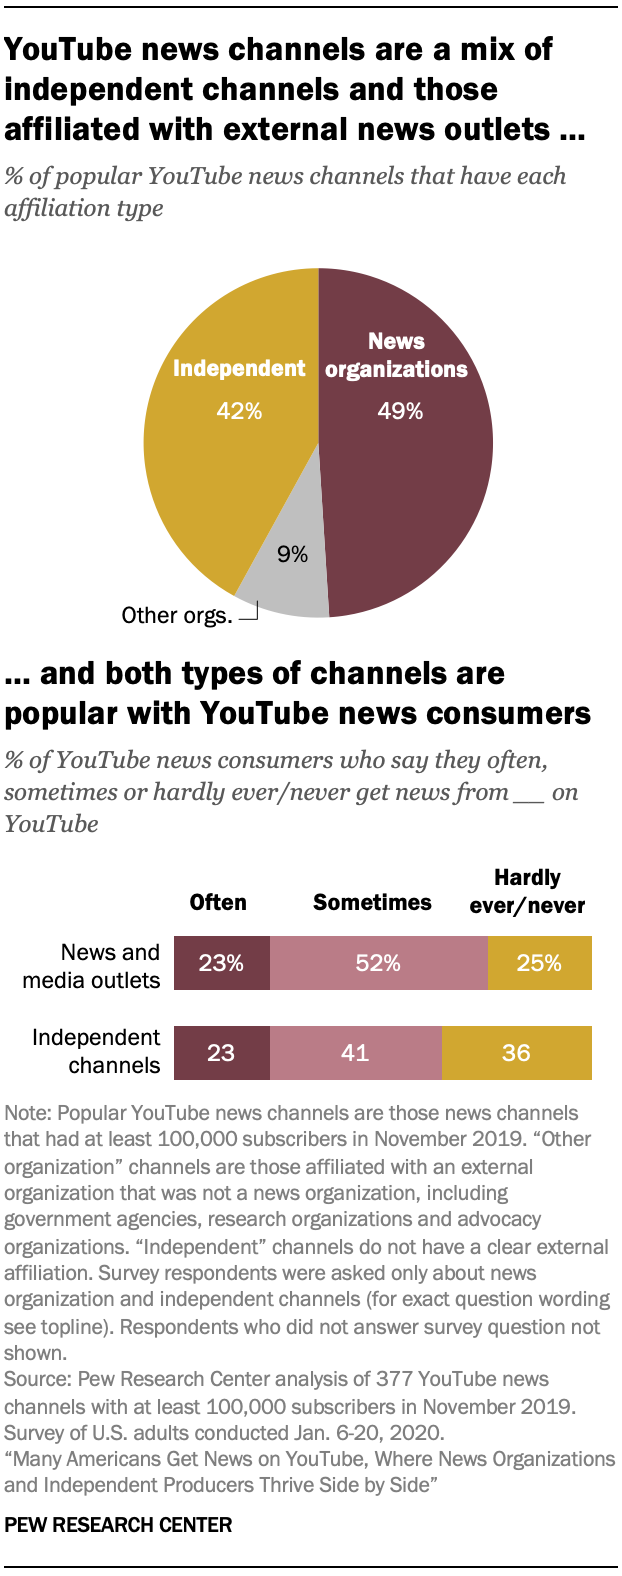 YouTube news channels are a mix of independent channels and those affiliated with external news outlets … and both types of channels are popular with YouTube news consumers